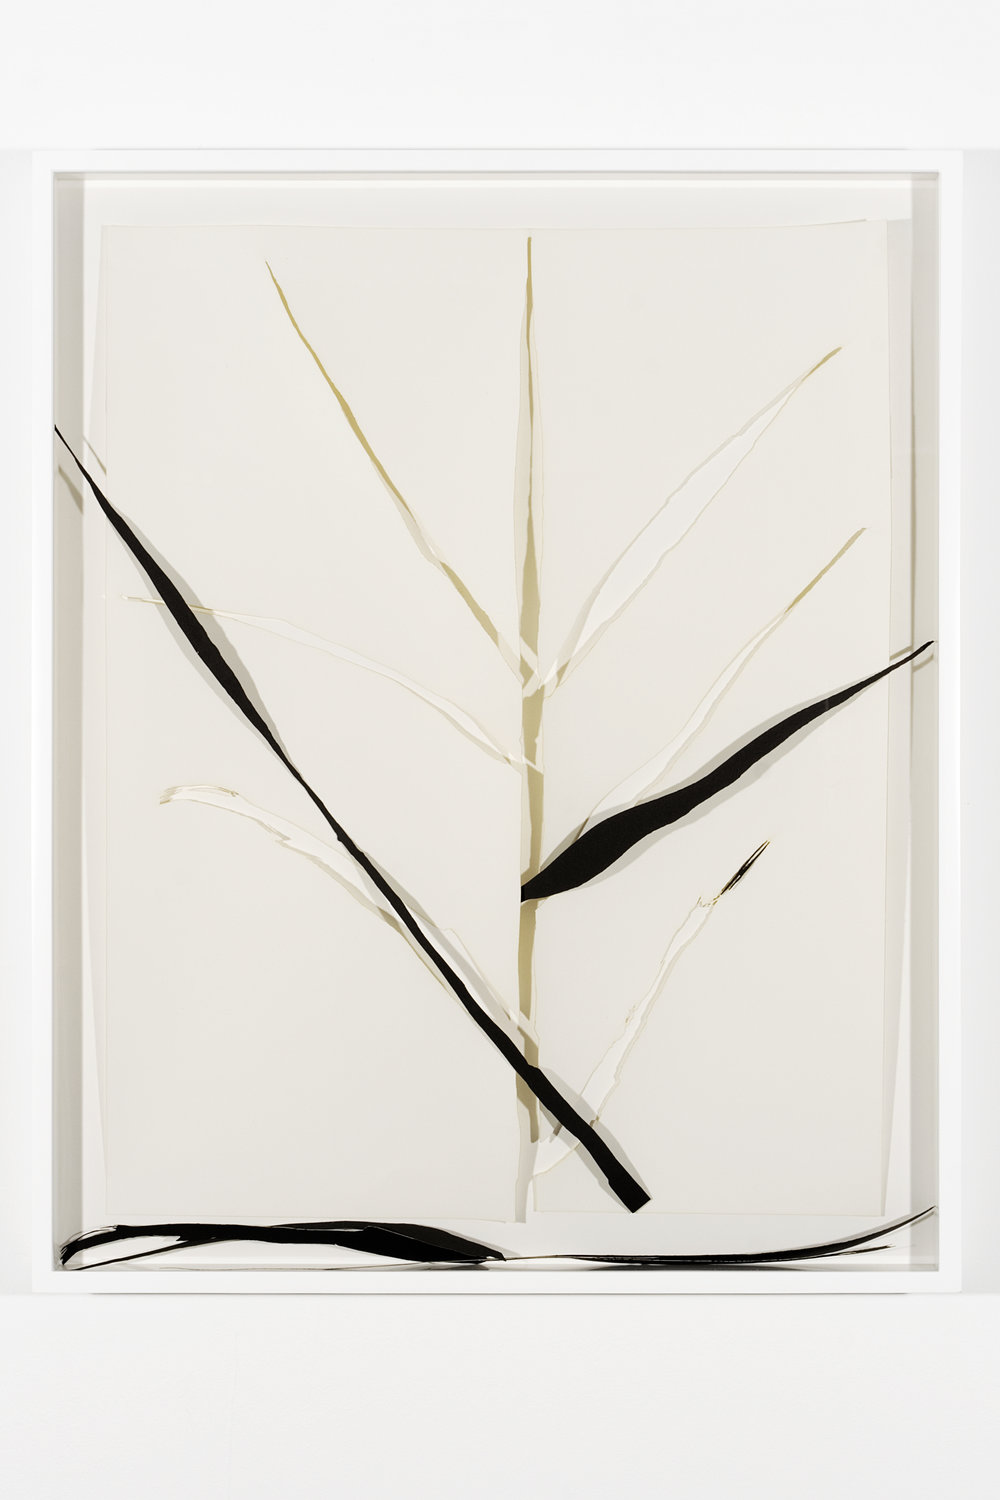 """Collapsed Drawing: """"Grass"""" (Ellsworth Kelly), 2007 laser-cut paper and laser-cut archival digital print mounted on museum board 80,7 x 65,5 cm - 31 3/4 x 25 3/4 inches (framed)"""